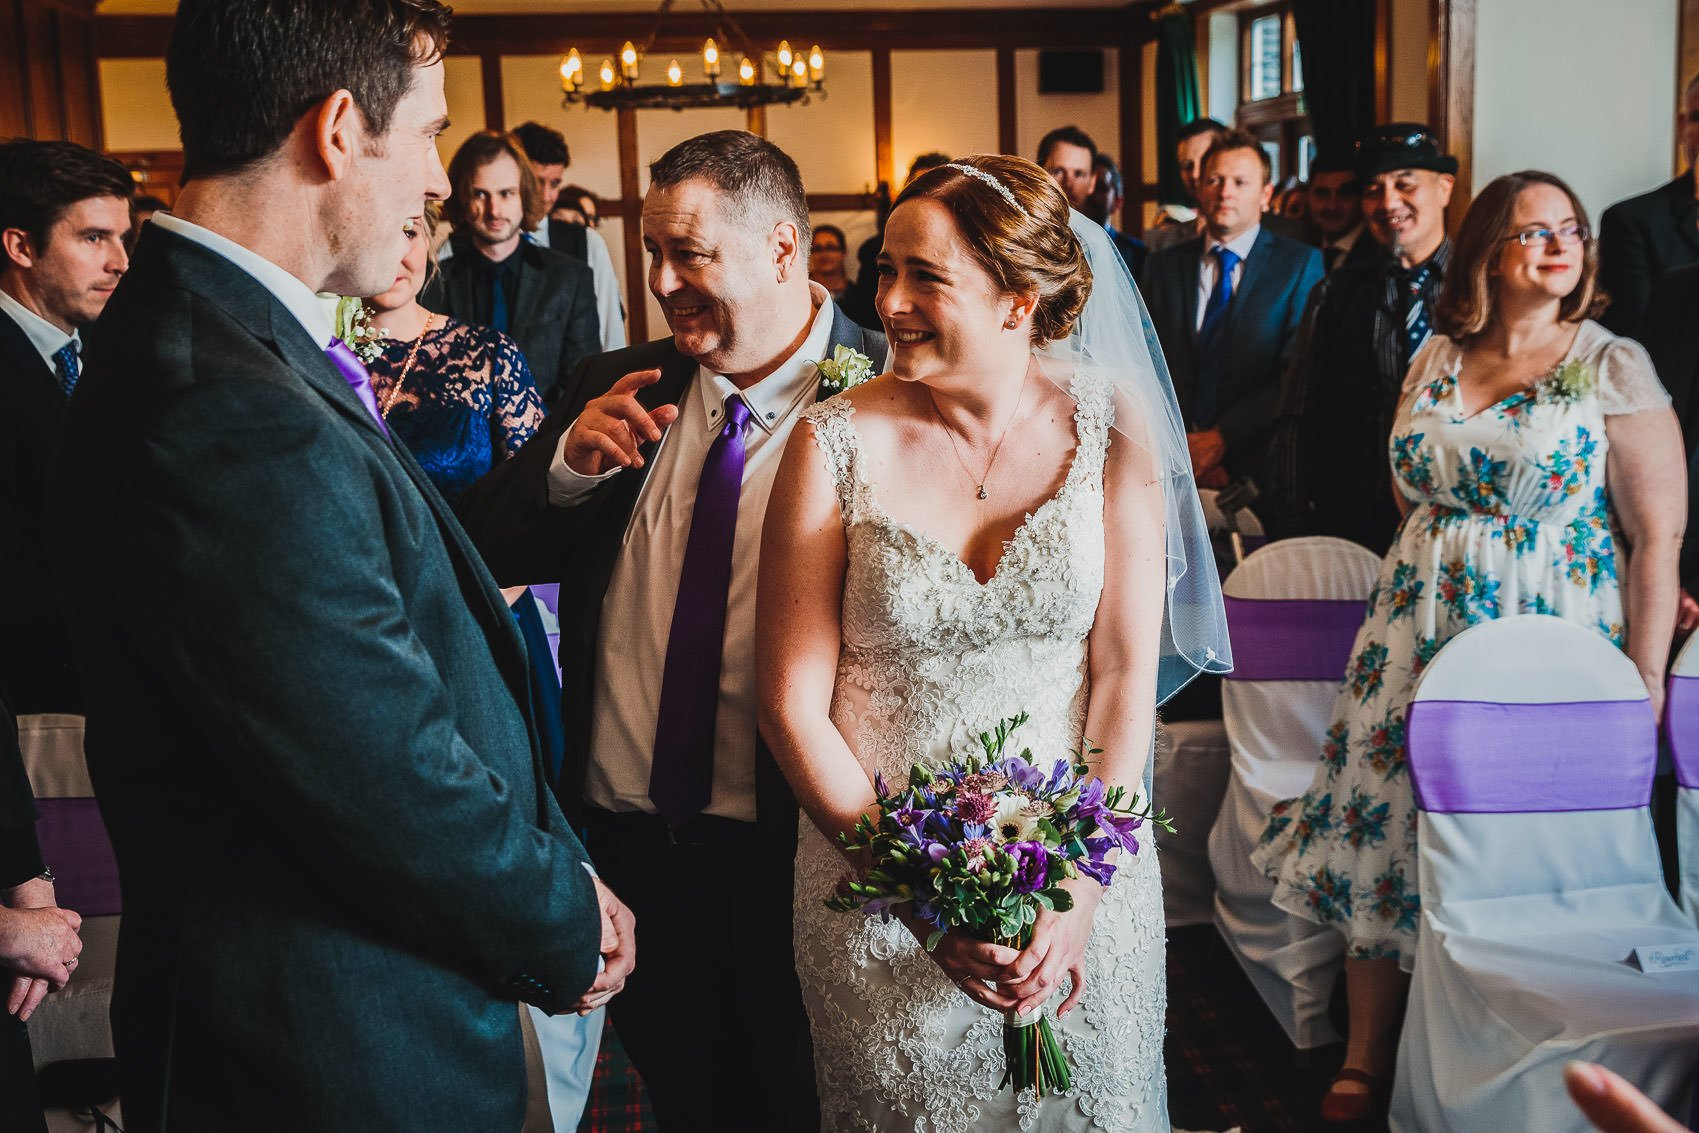 Farnham House Hotel Wedding Photography - James and Lucy 9